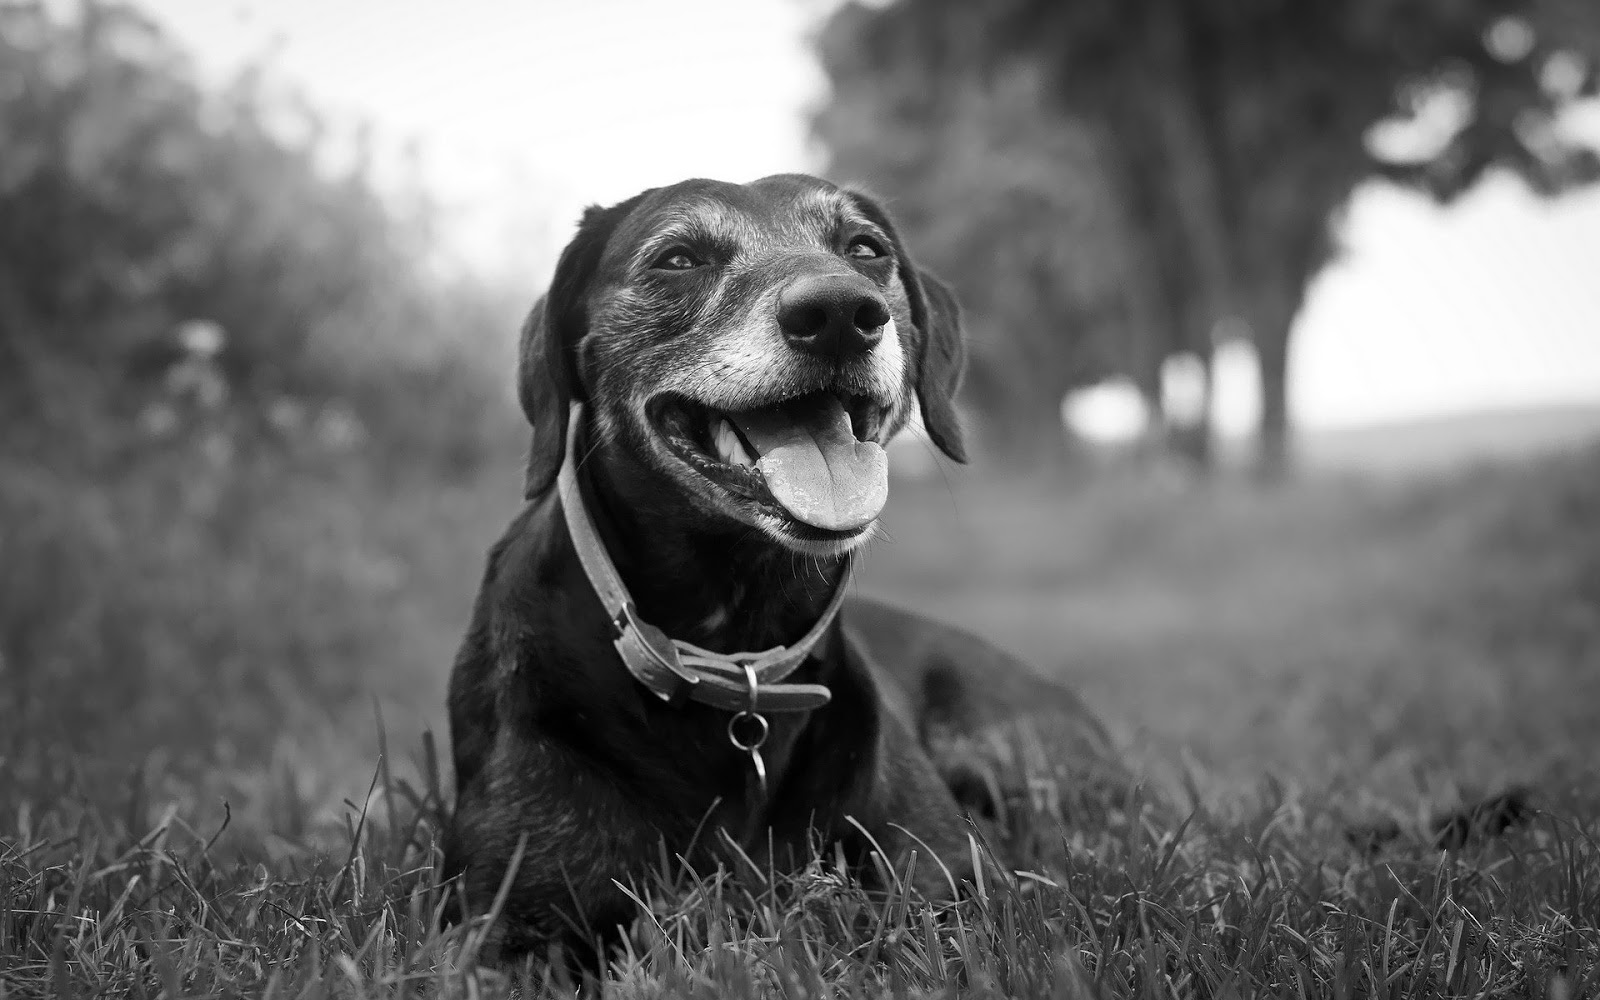 Image Detail for - Black and white wallpaper with a dog | HD